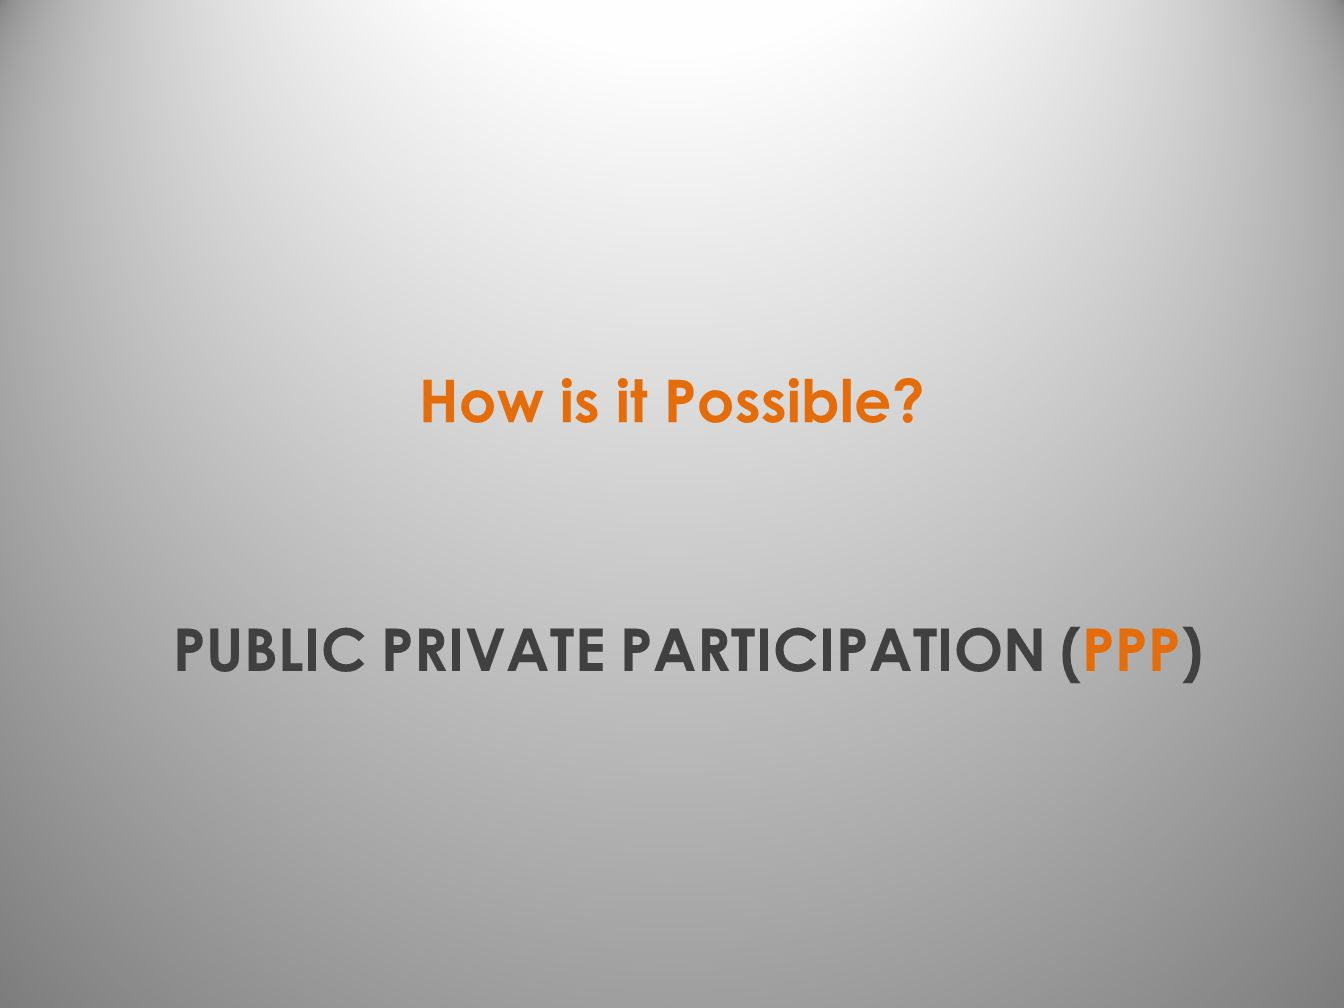 PUBLIC PRIVATE PARTICIPATION (PPP) How is it Possible?